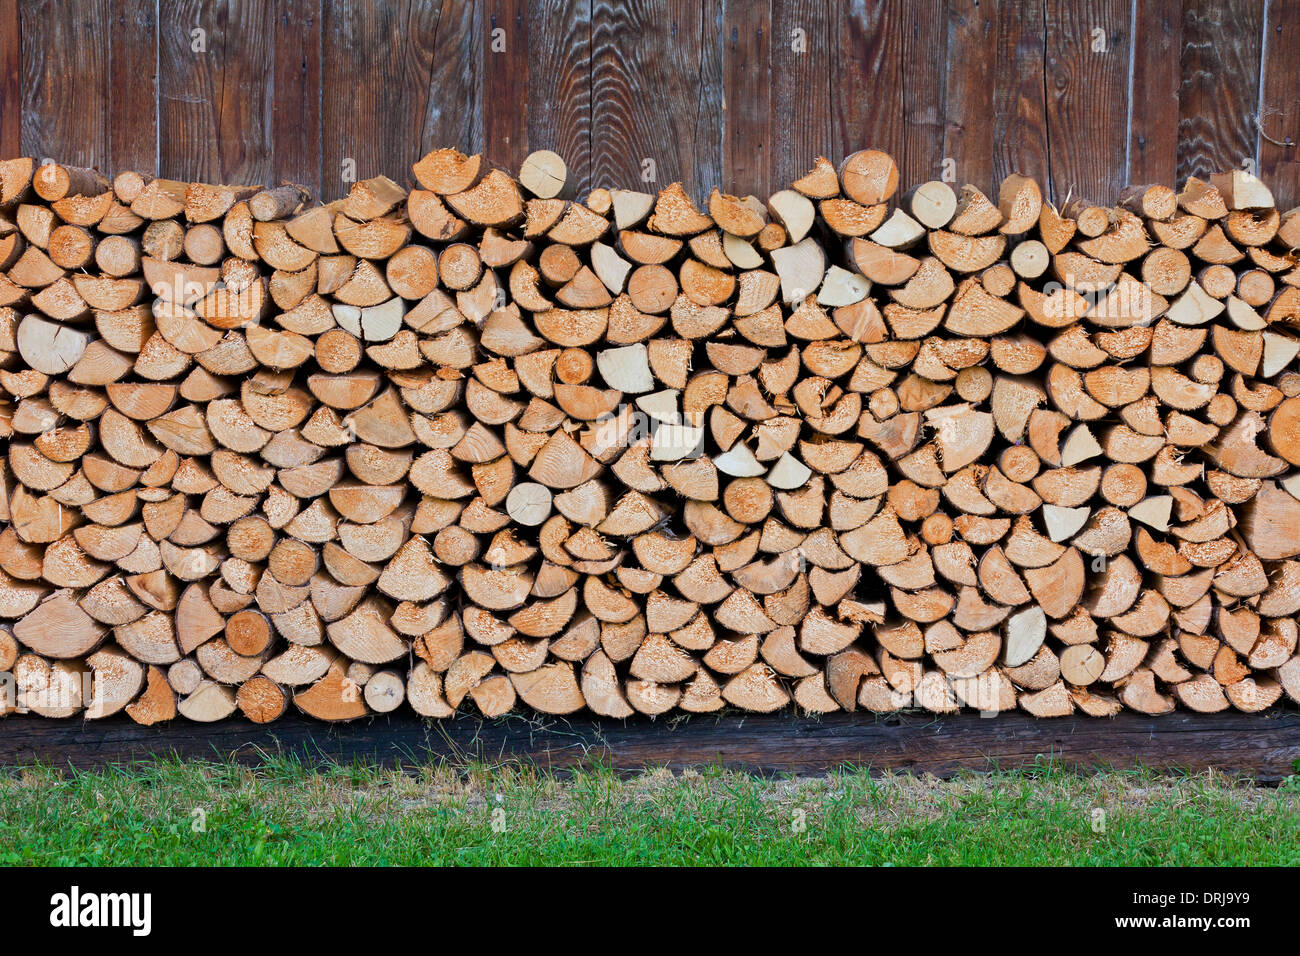 Stack of split firewood used as wood fuel stored against wooden cabin - Stock Image